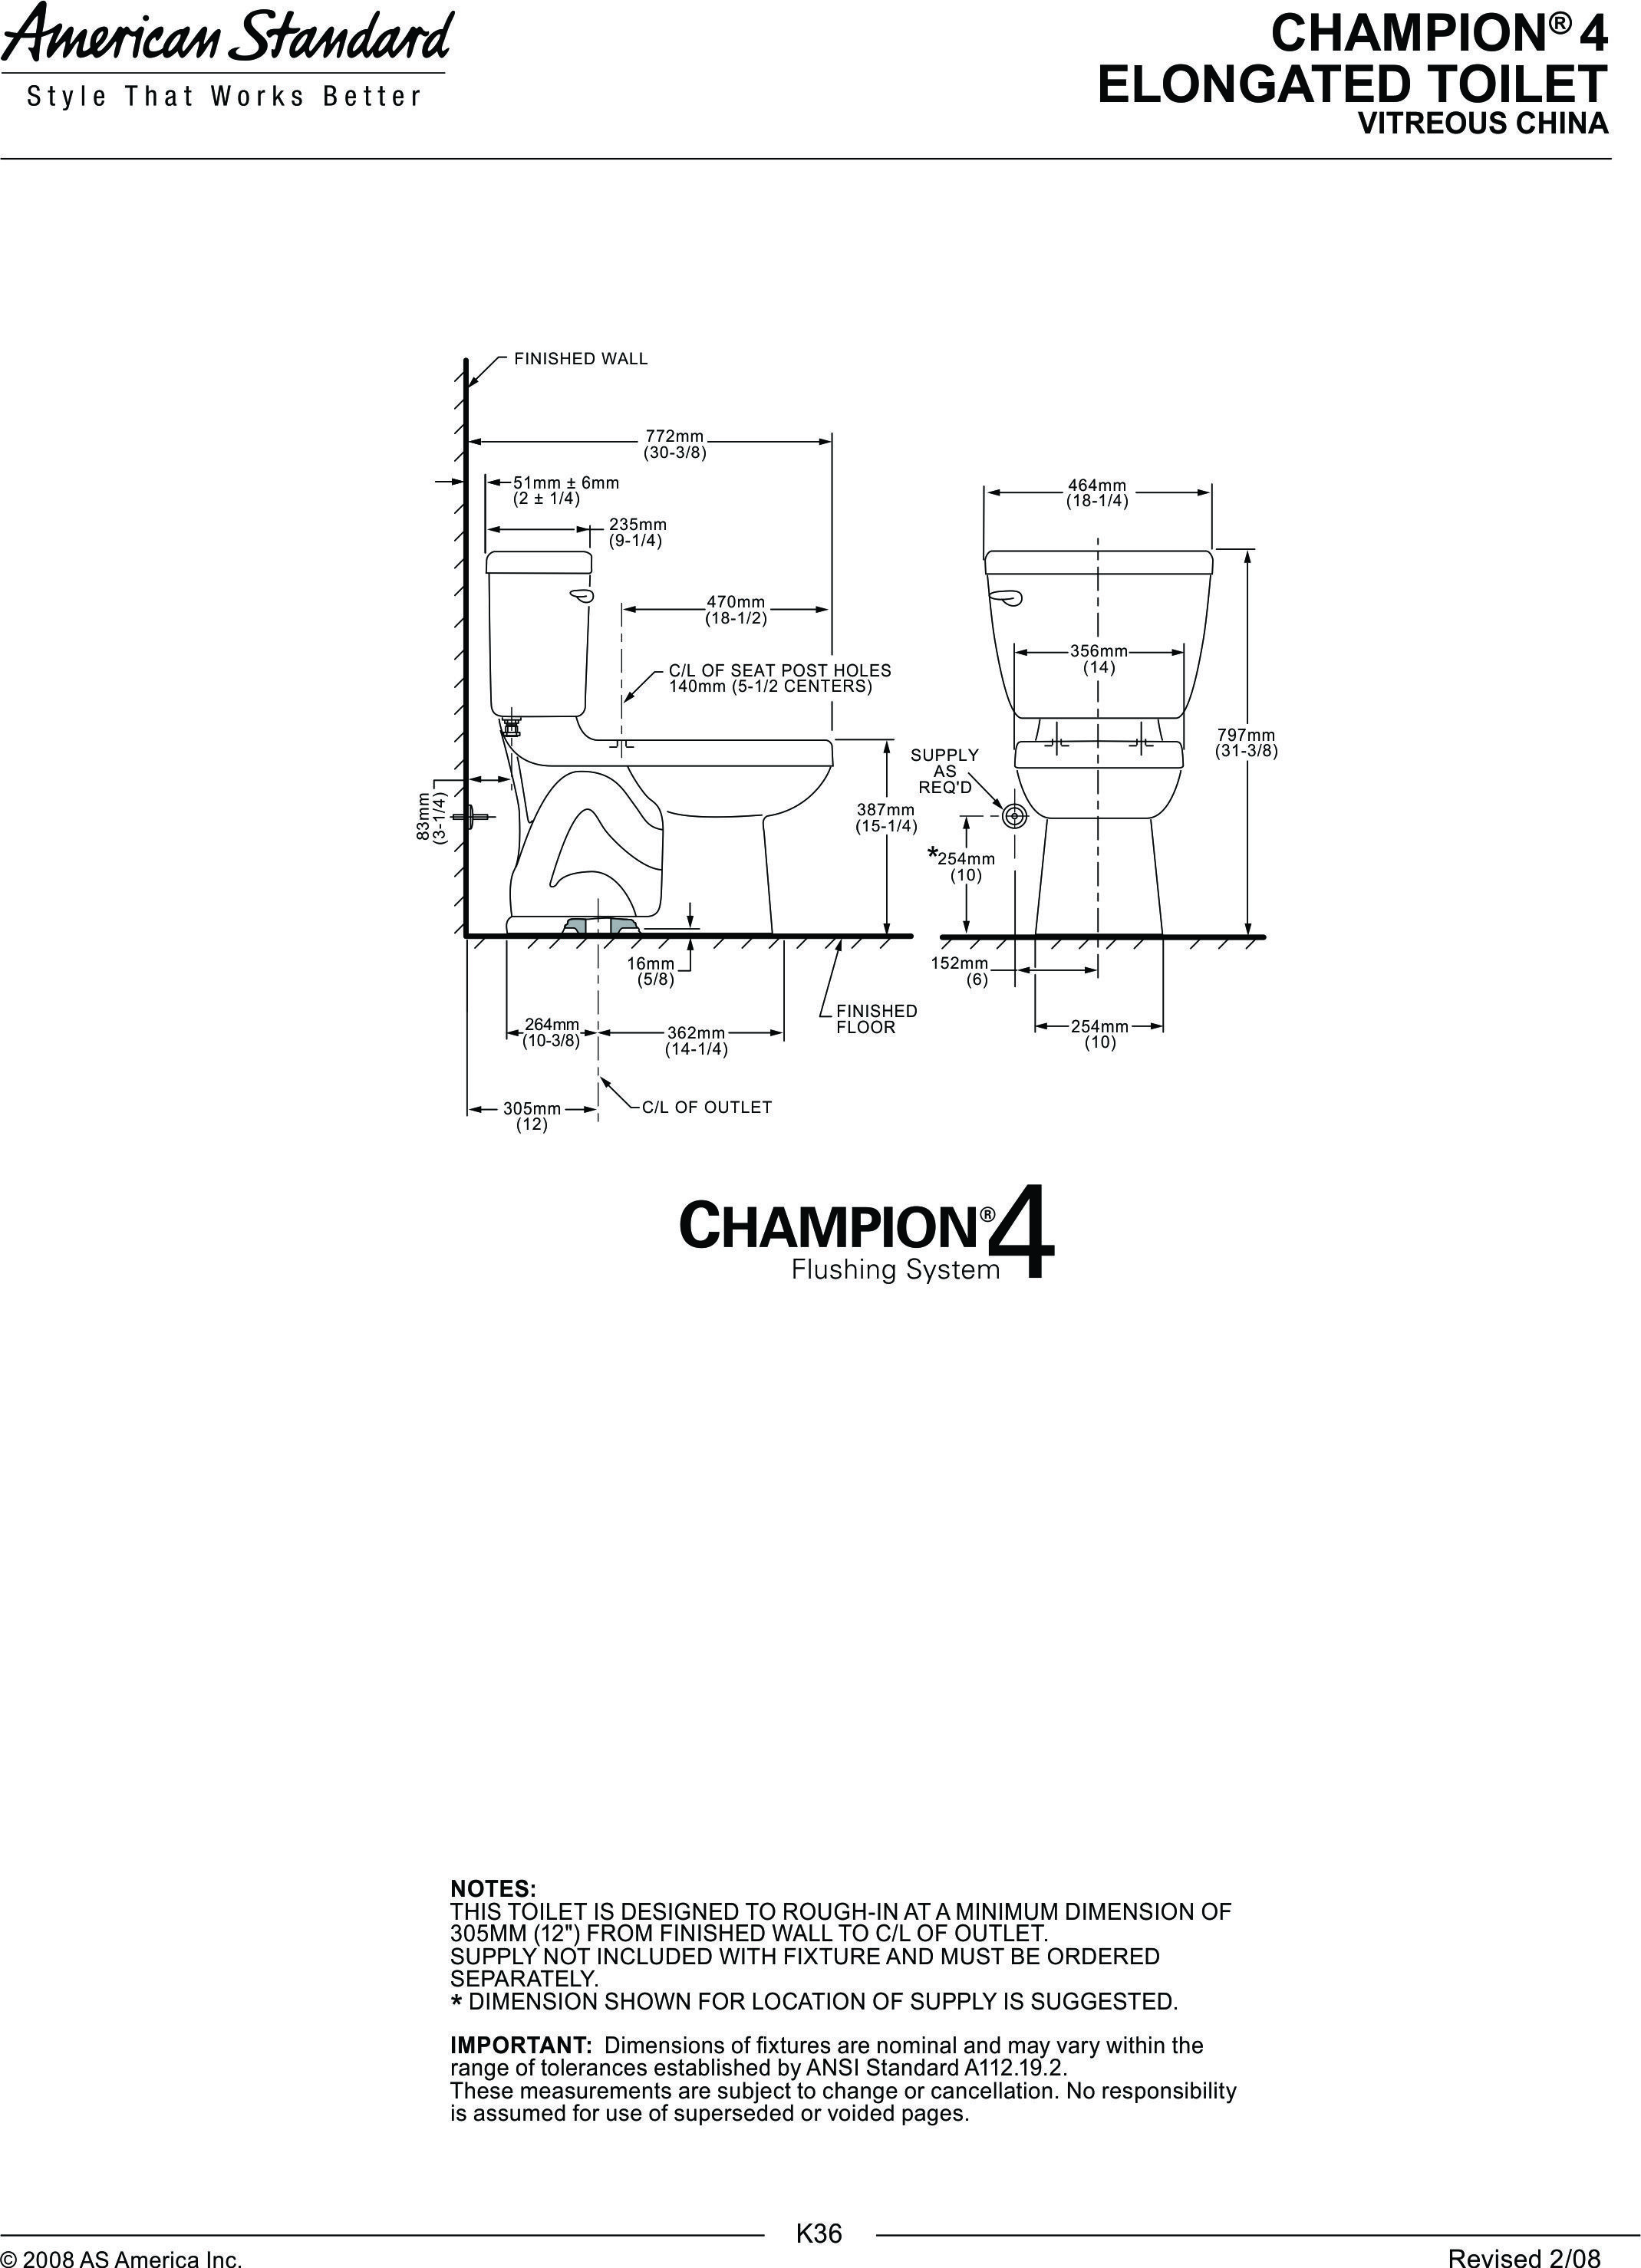 american standard champion 4 toilet specs american standard wall outlets flipping houses american standard champion 4 toilet